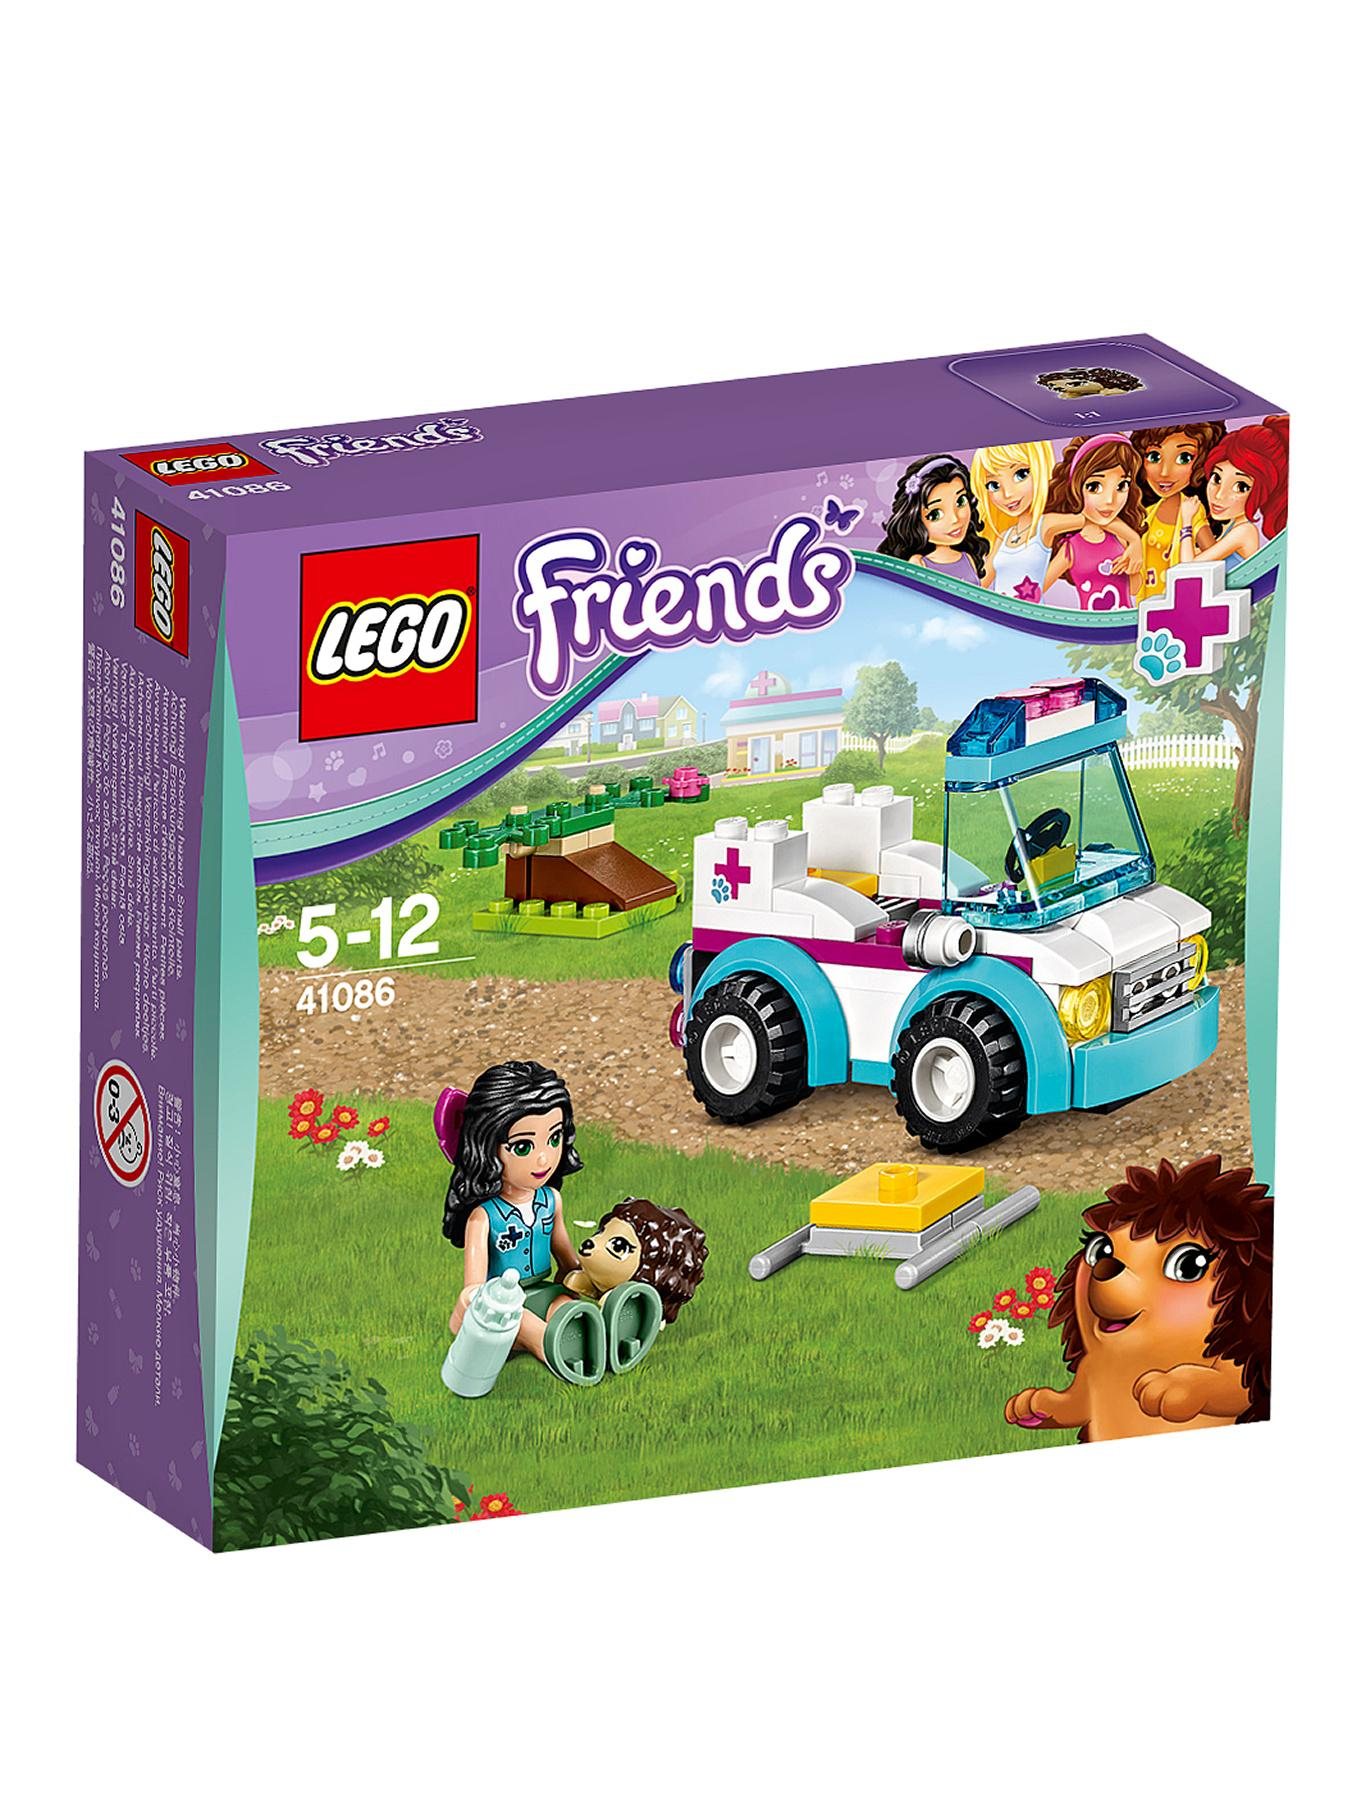 LEGO Friends Lego Friends Vet Ambulance 41086